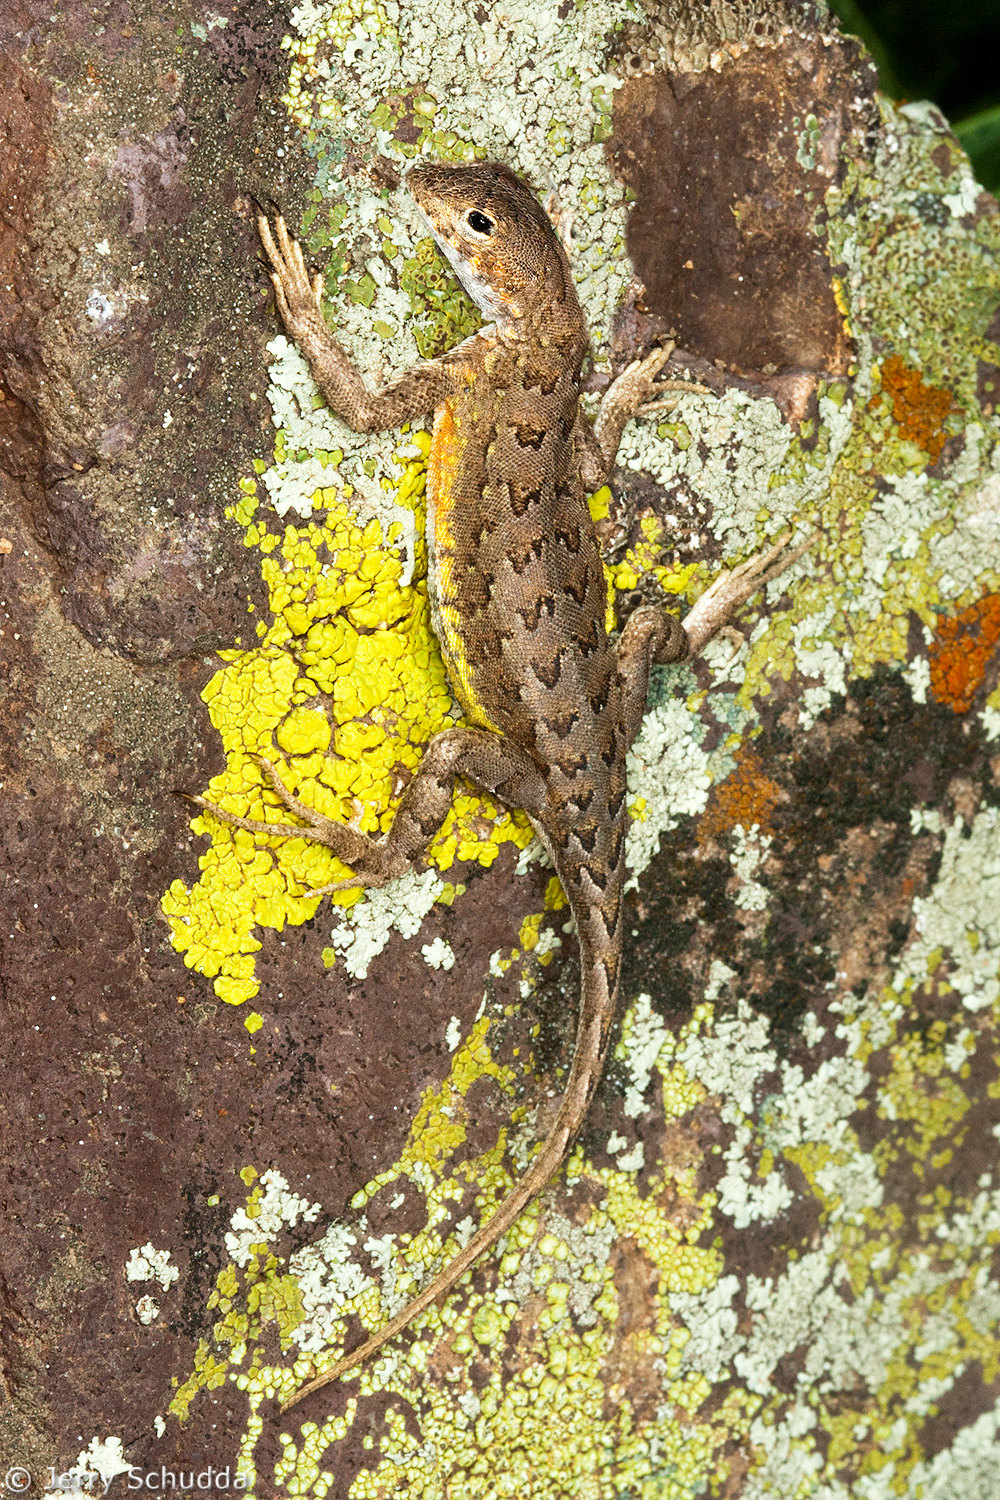 Elegant Earless Lizard 1